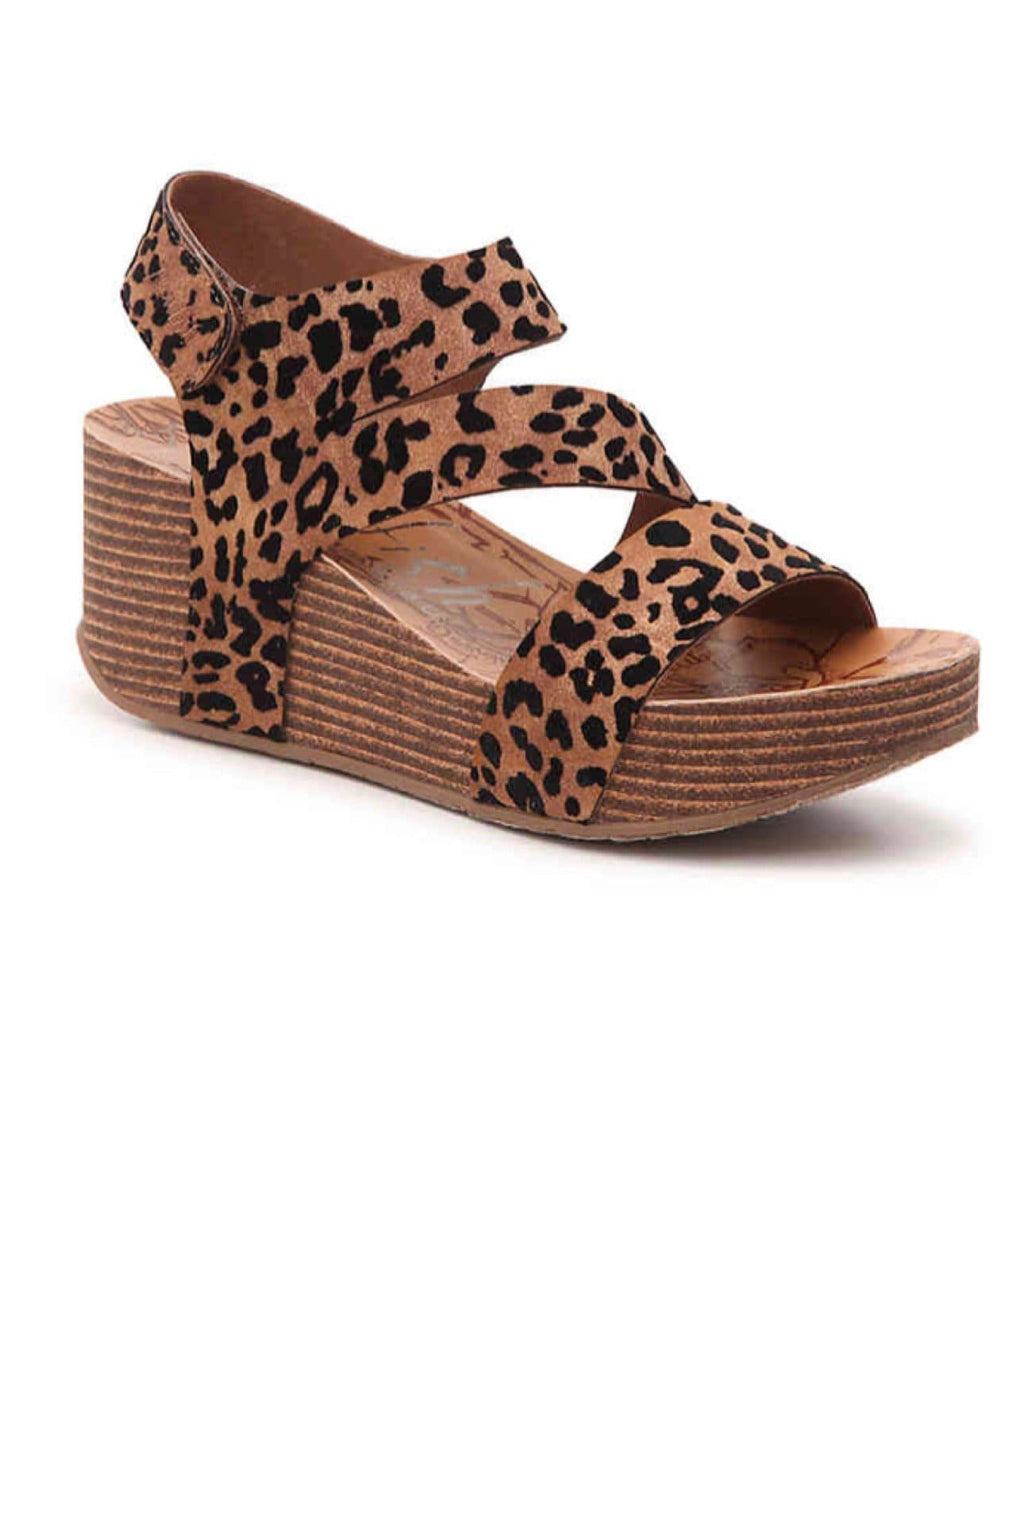 BLOWFISH LEOPARD WEDGE SANDALS - Infinity Raine